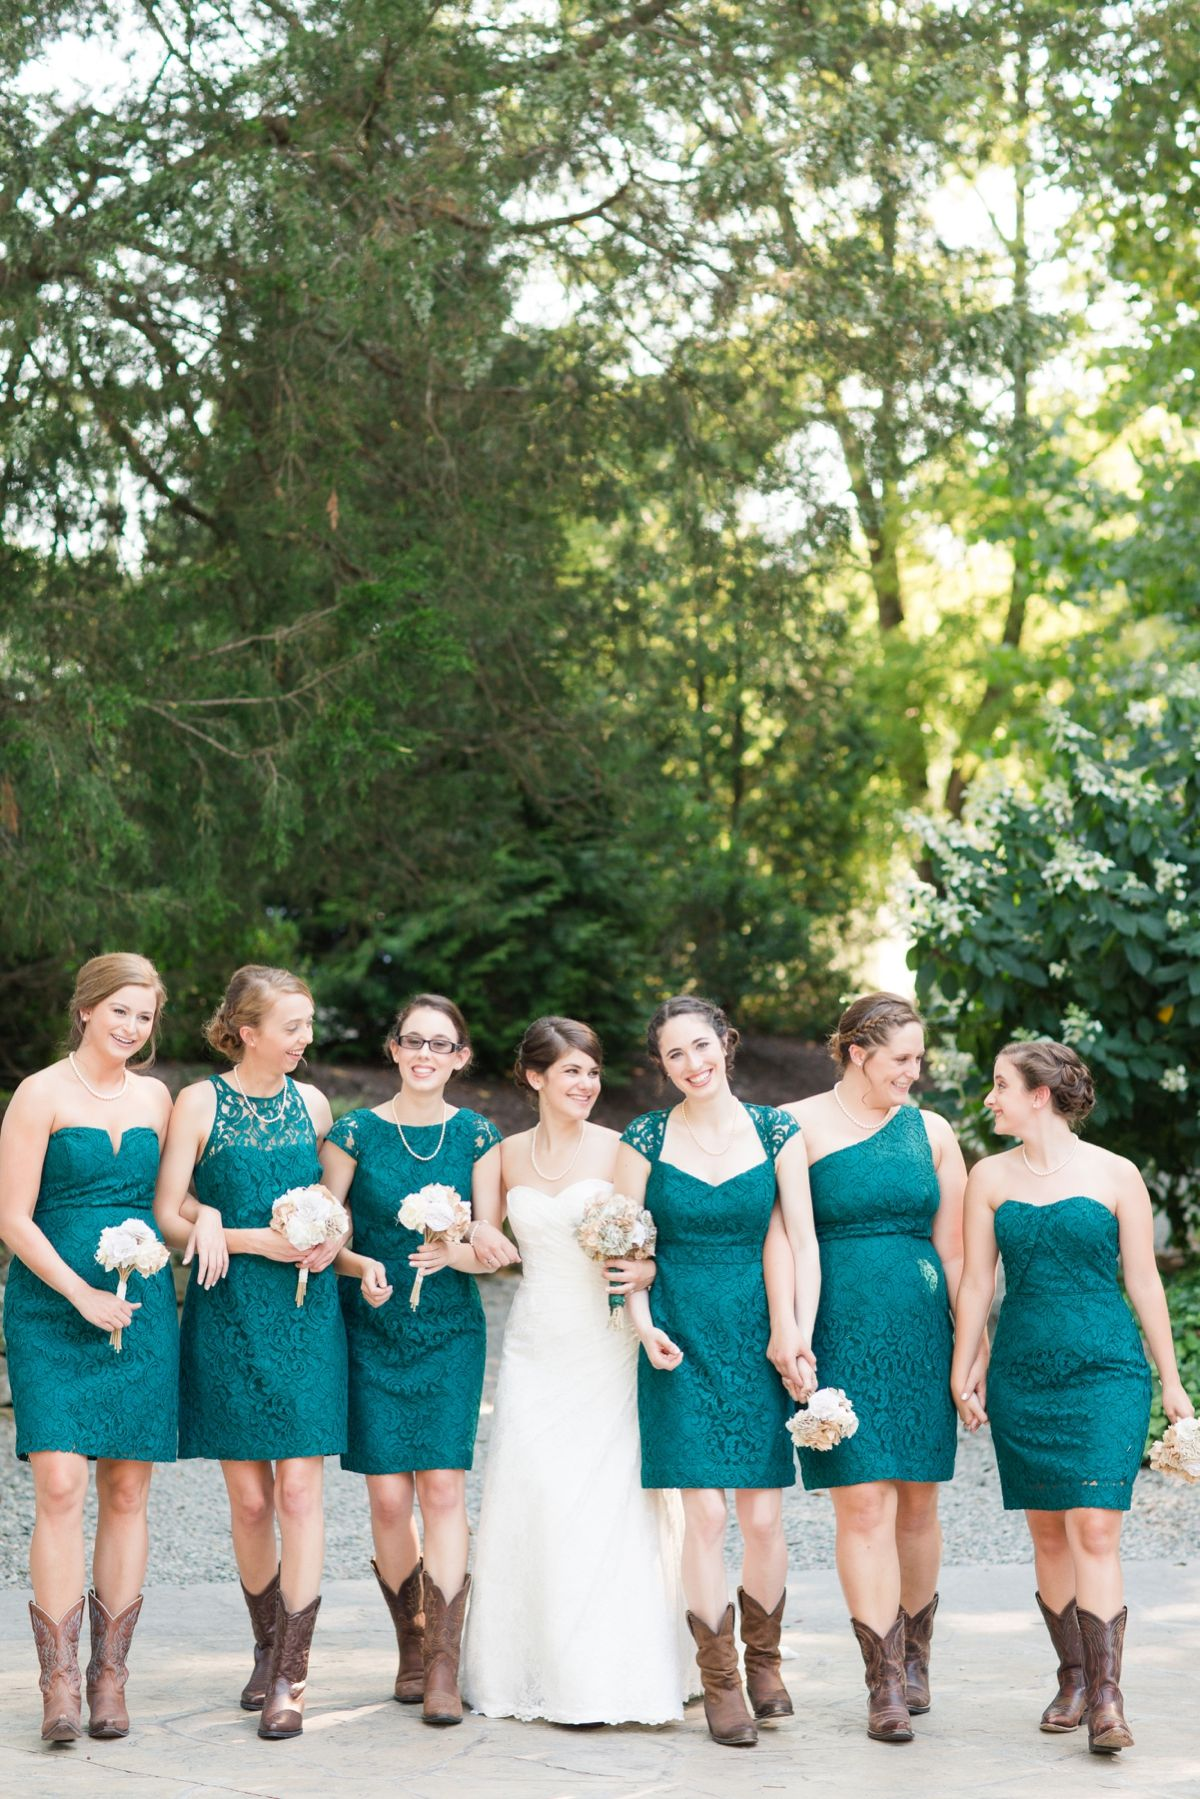 Teal Wedding Bridesmaid Dresses